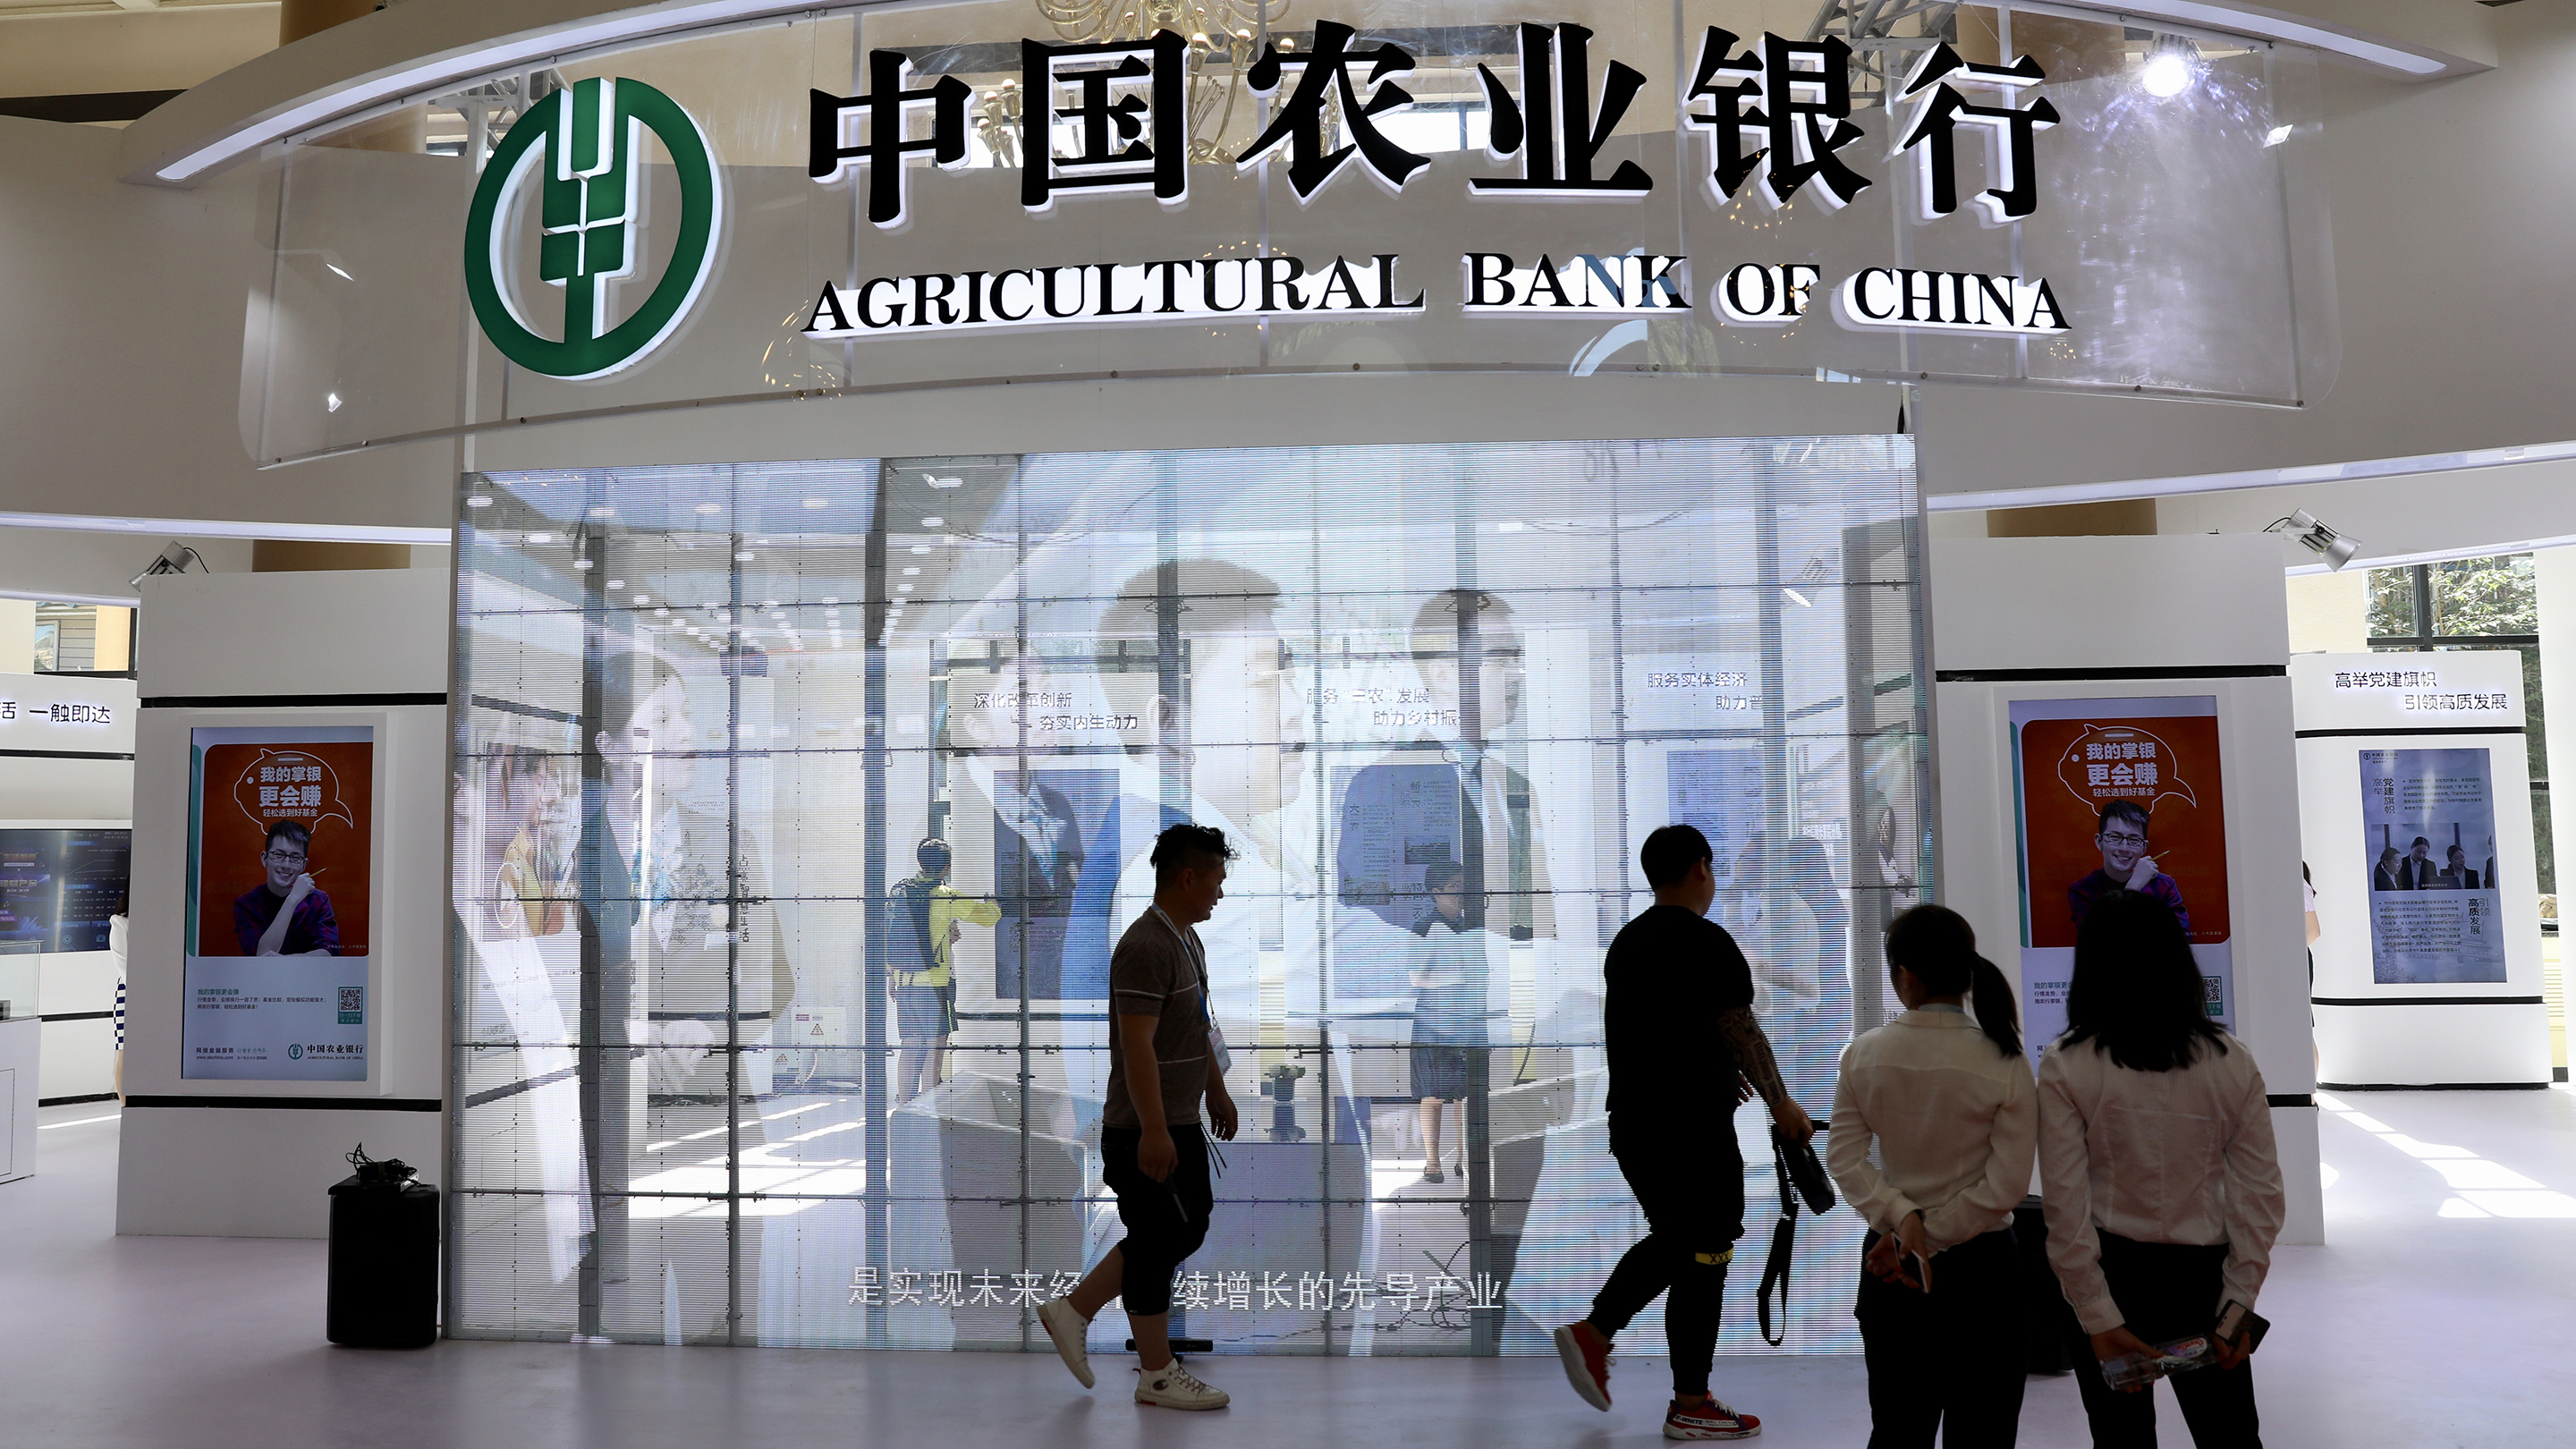 Global 500 2019-Agricultural bank of china